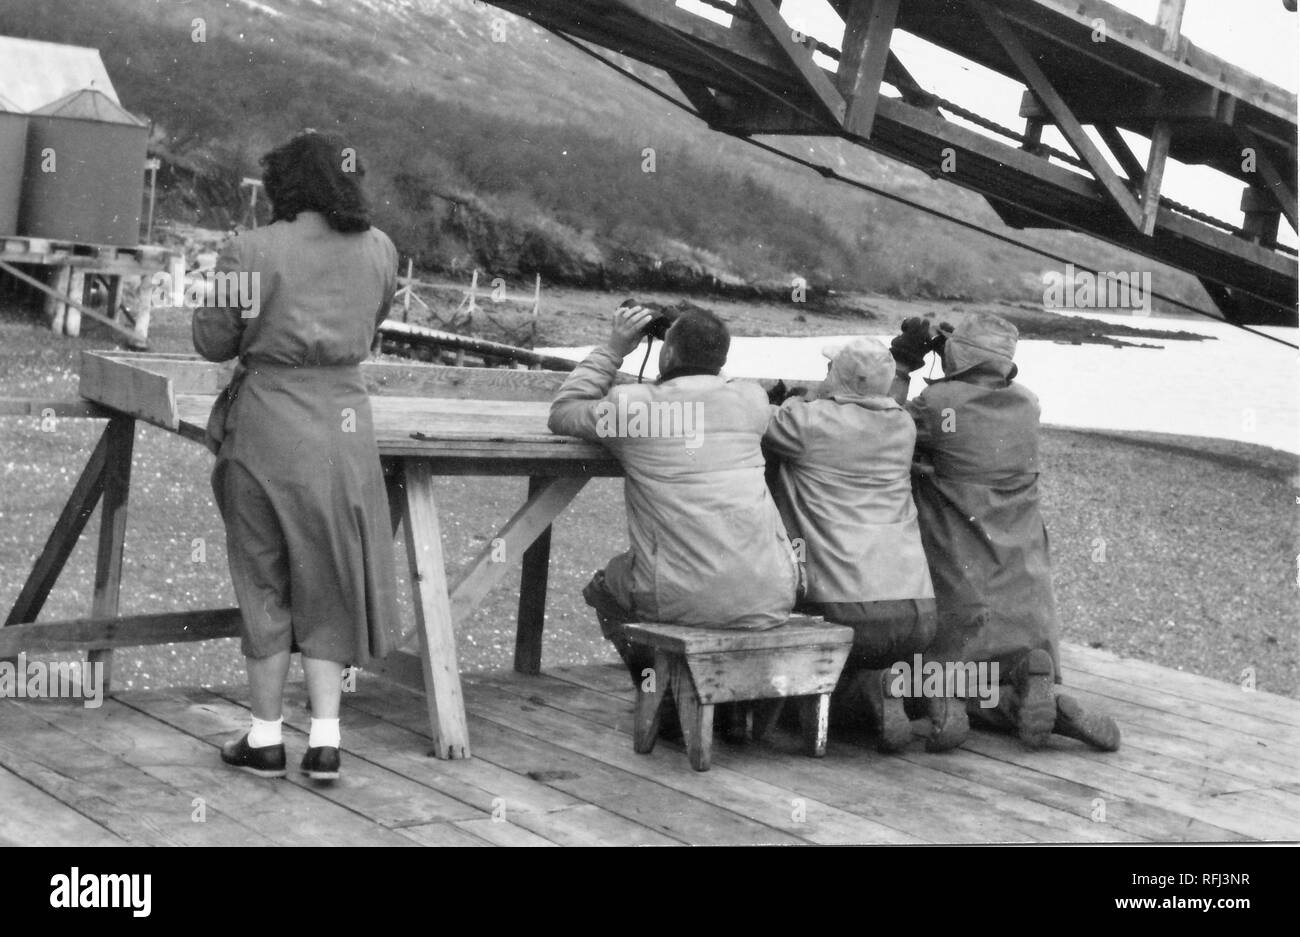 Black and white photograph of a woman and three men, shot from the behind; the woman wears a tea-length dress or coat and ankle socks, and stands just left of the men, who wear coats and boots, and look through binoculars while sitting and kneeling at a rickety wooden table built at the edge of a pier; with a slope, exposed shoreline, a body of water, and another pier visible in the background, and a gangplank visible in at top right; photographed during a hunting and fishing trip located in Alaska, 1955. () - Stock Image